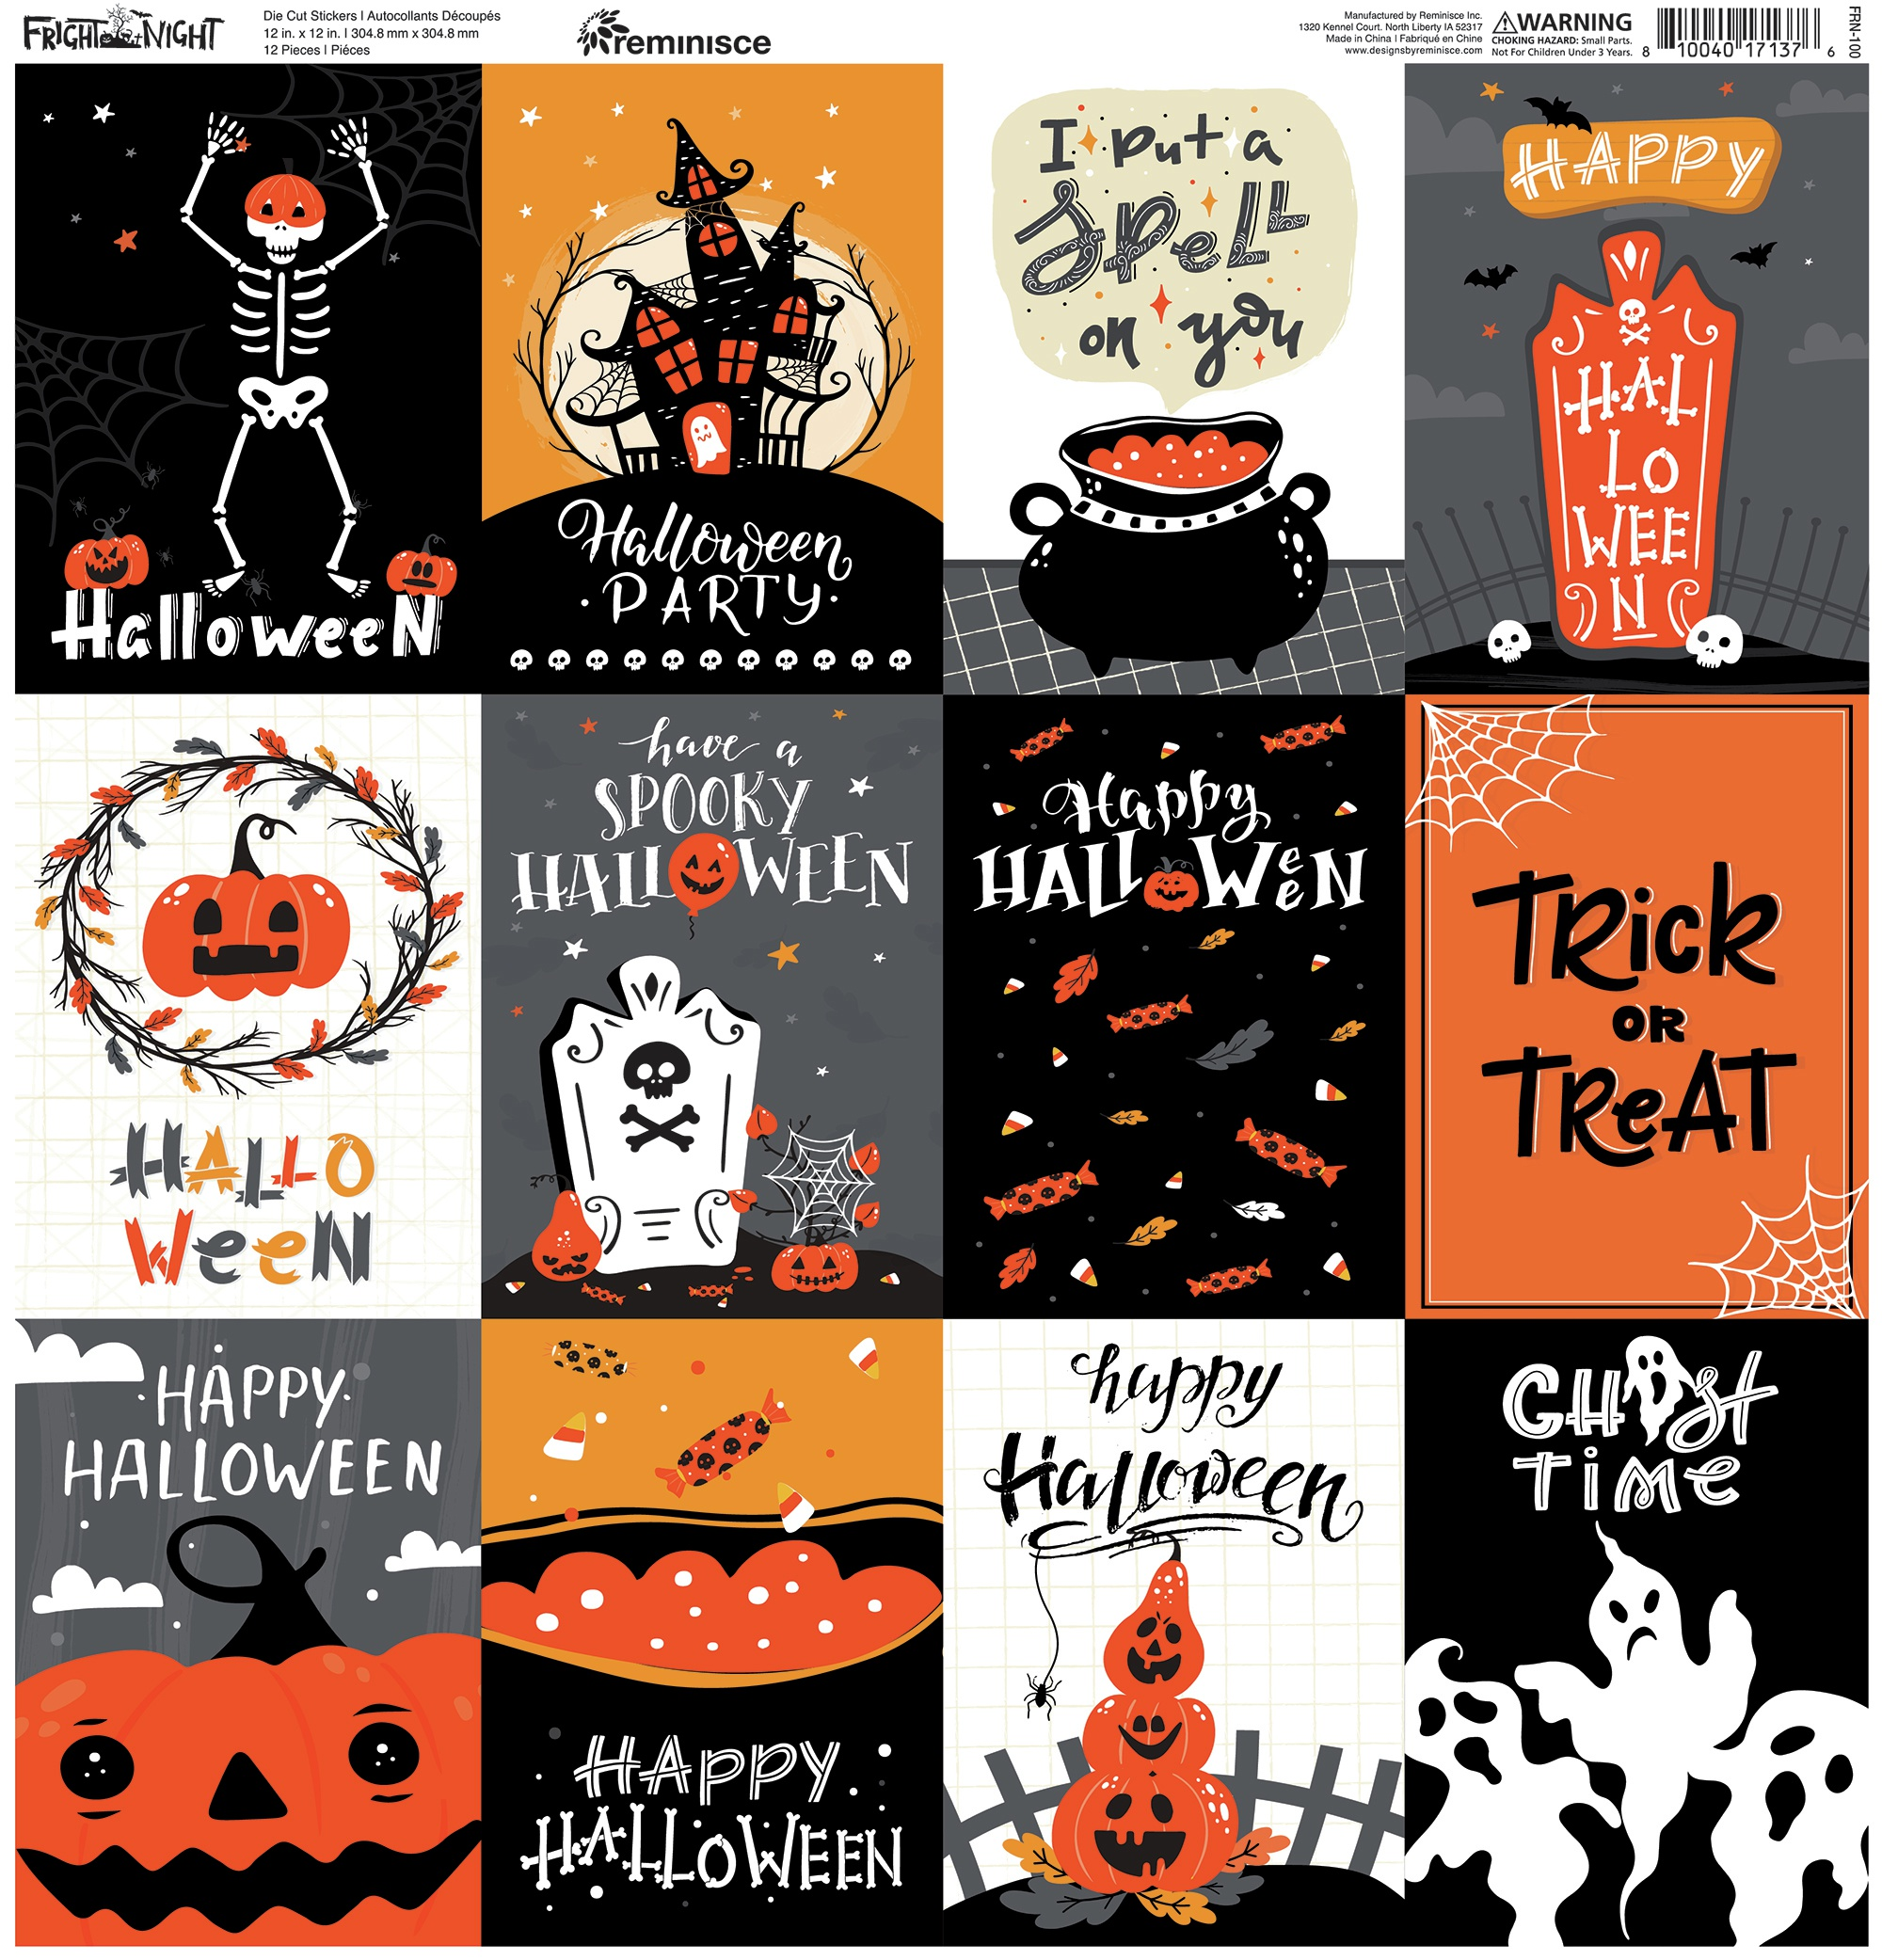 Reminisce Square Cardstock Stickers 12X12-Fright Night